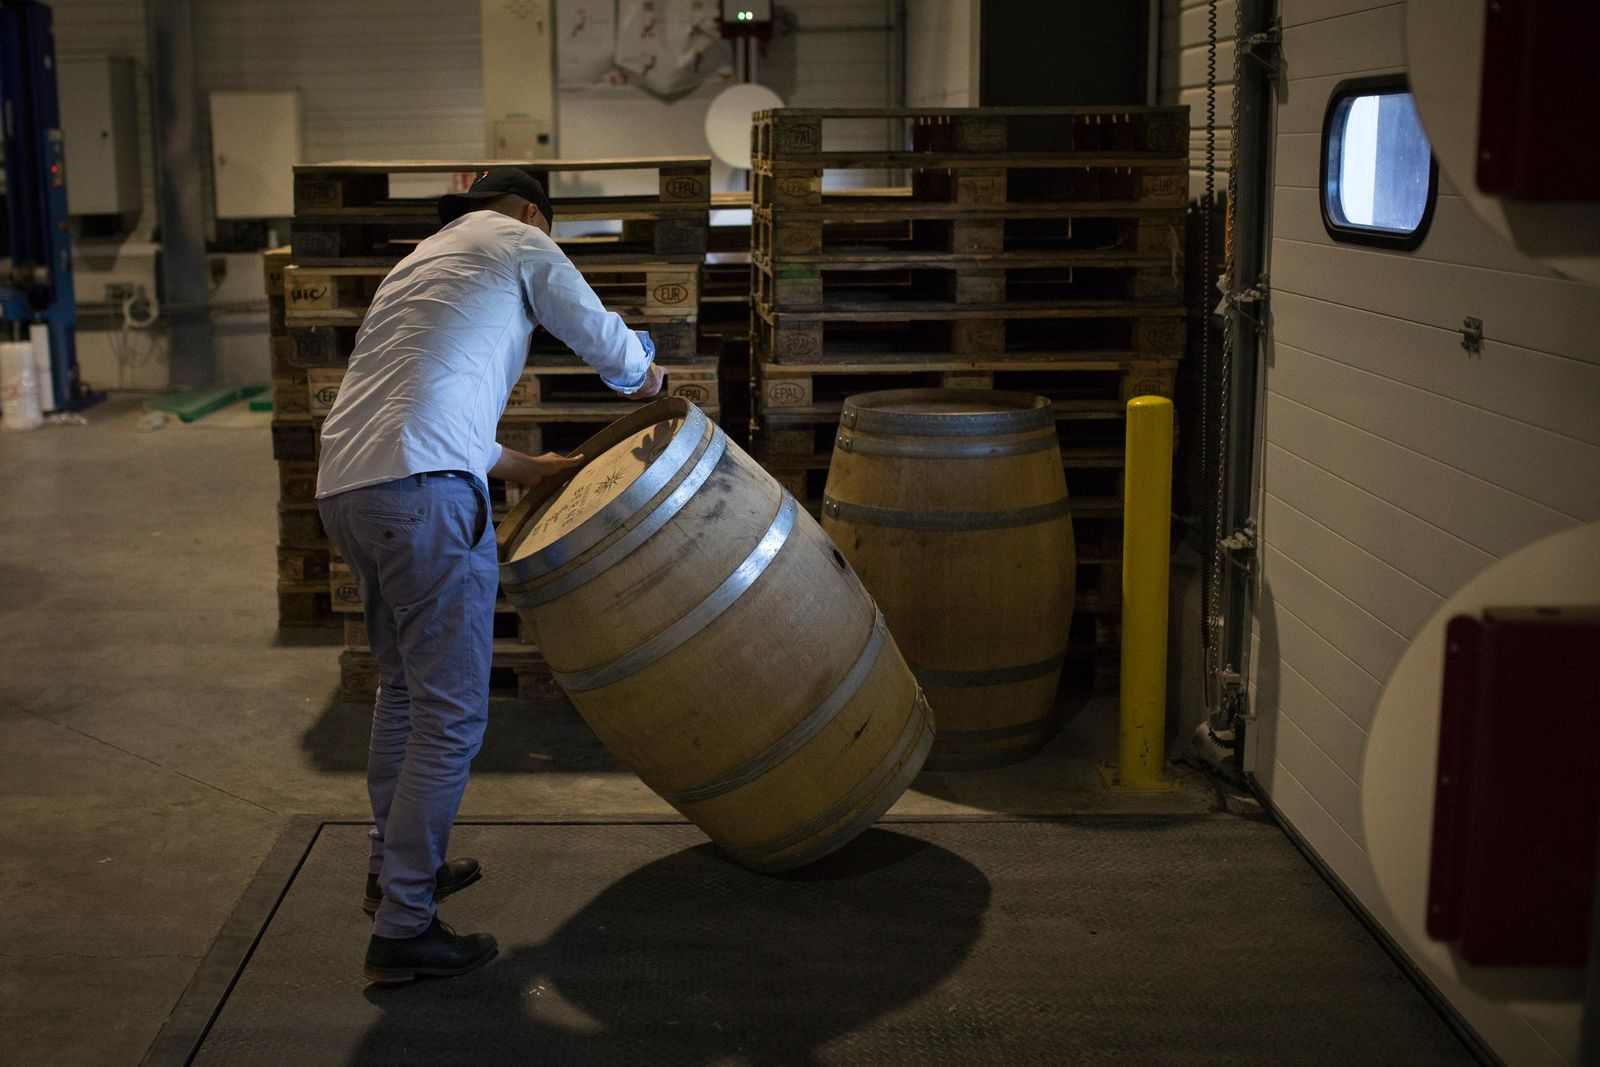 An employee moves an empty barrel in the shipping warehouse of the French wine producer MDCV, in the Chateau des Bertrands in Le Cannet-des-Maures, in the Provence region, Thursday Oct. 10, 2019. (AP Photo/Daniel Cole)